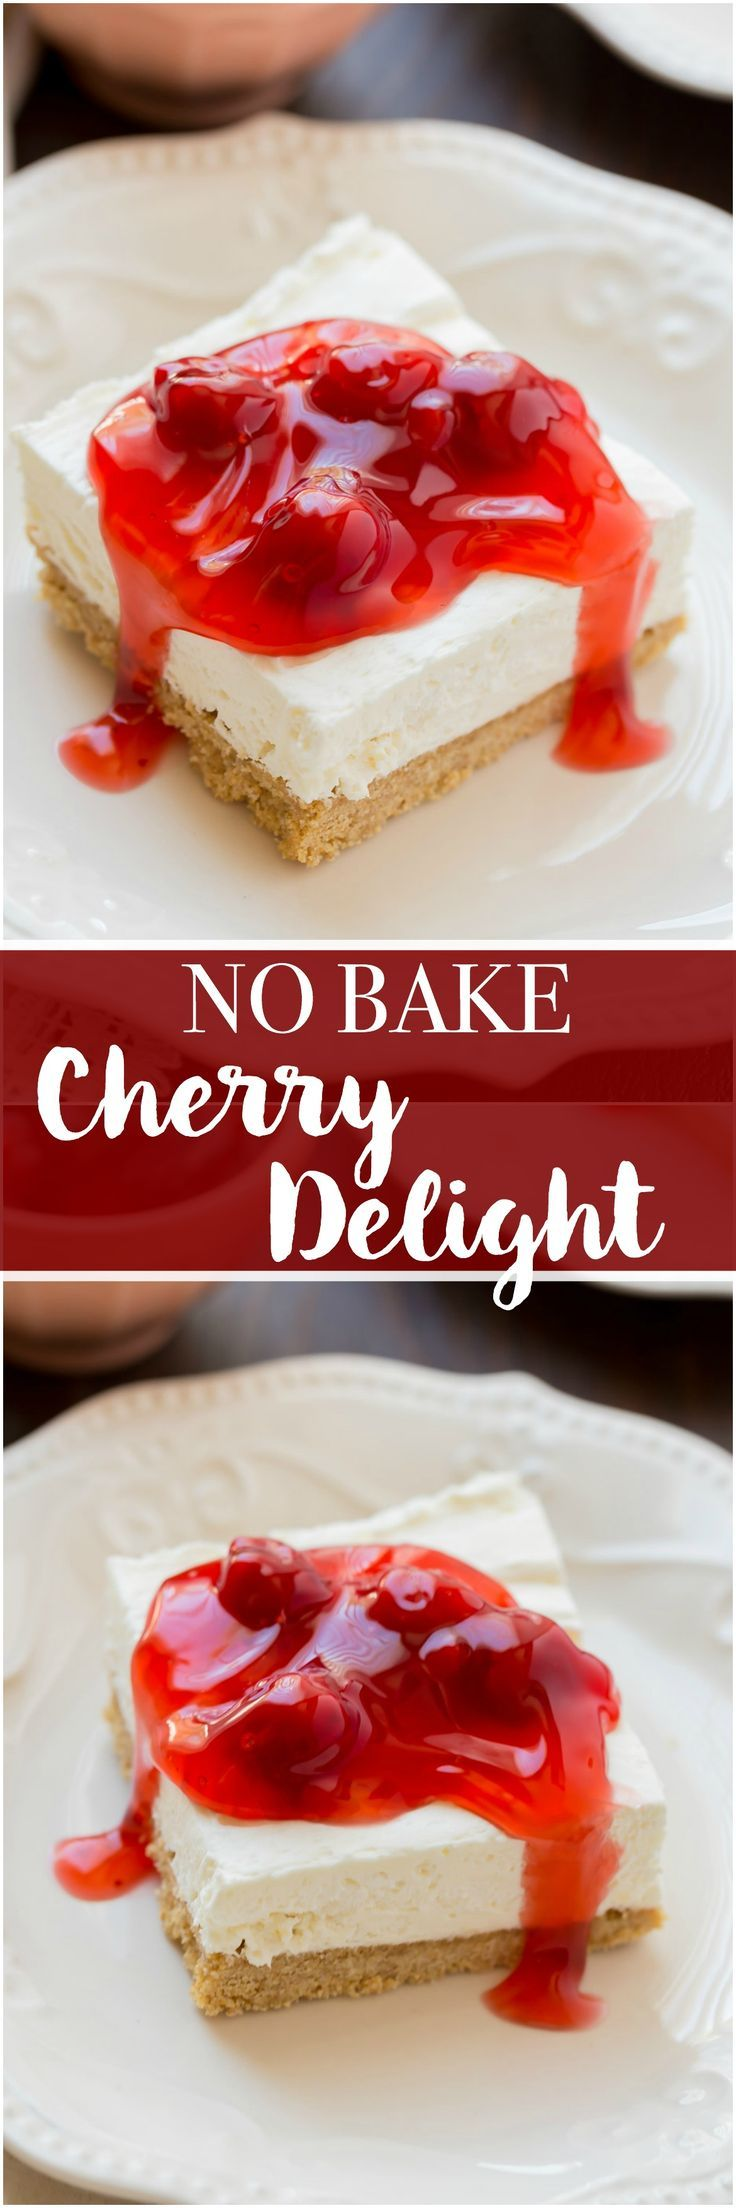 No Bake Cherry Delight is a family favorite. This dessert is a scrumptious no bake dessert and perfect for those hot summer days!